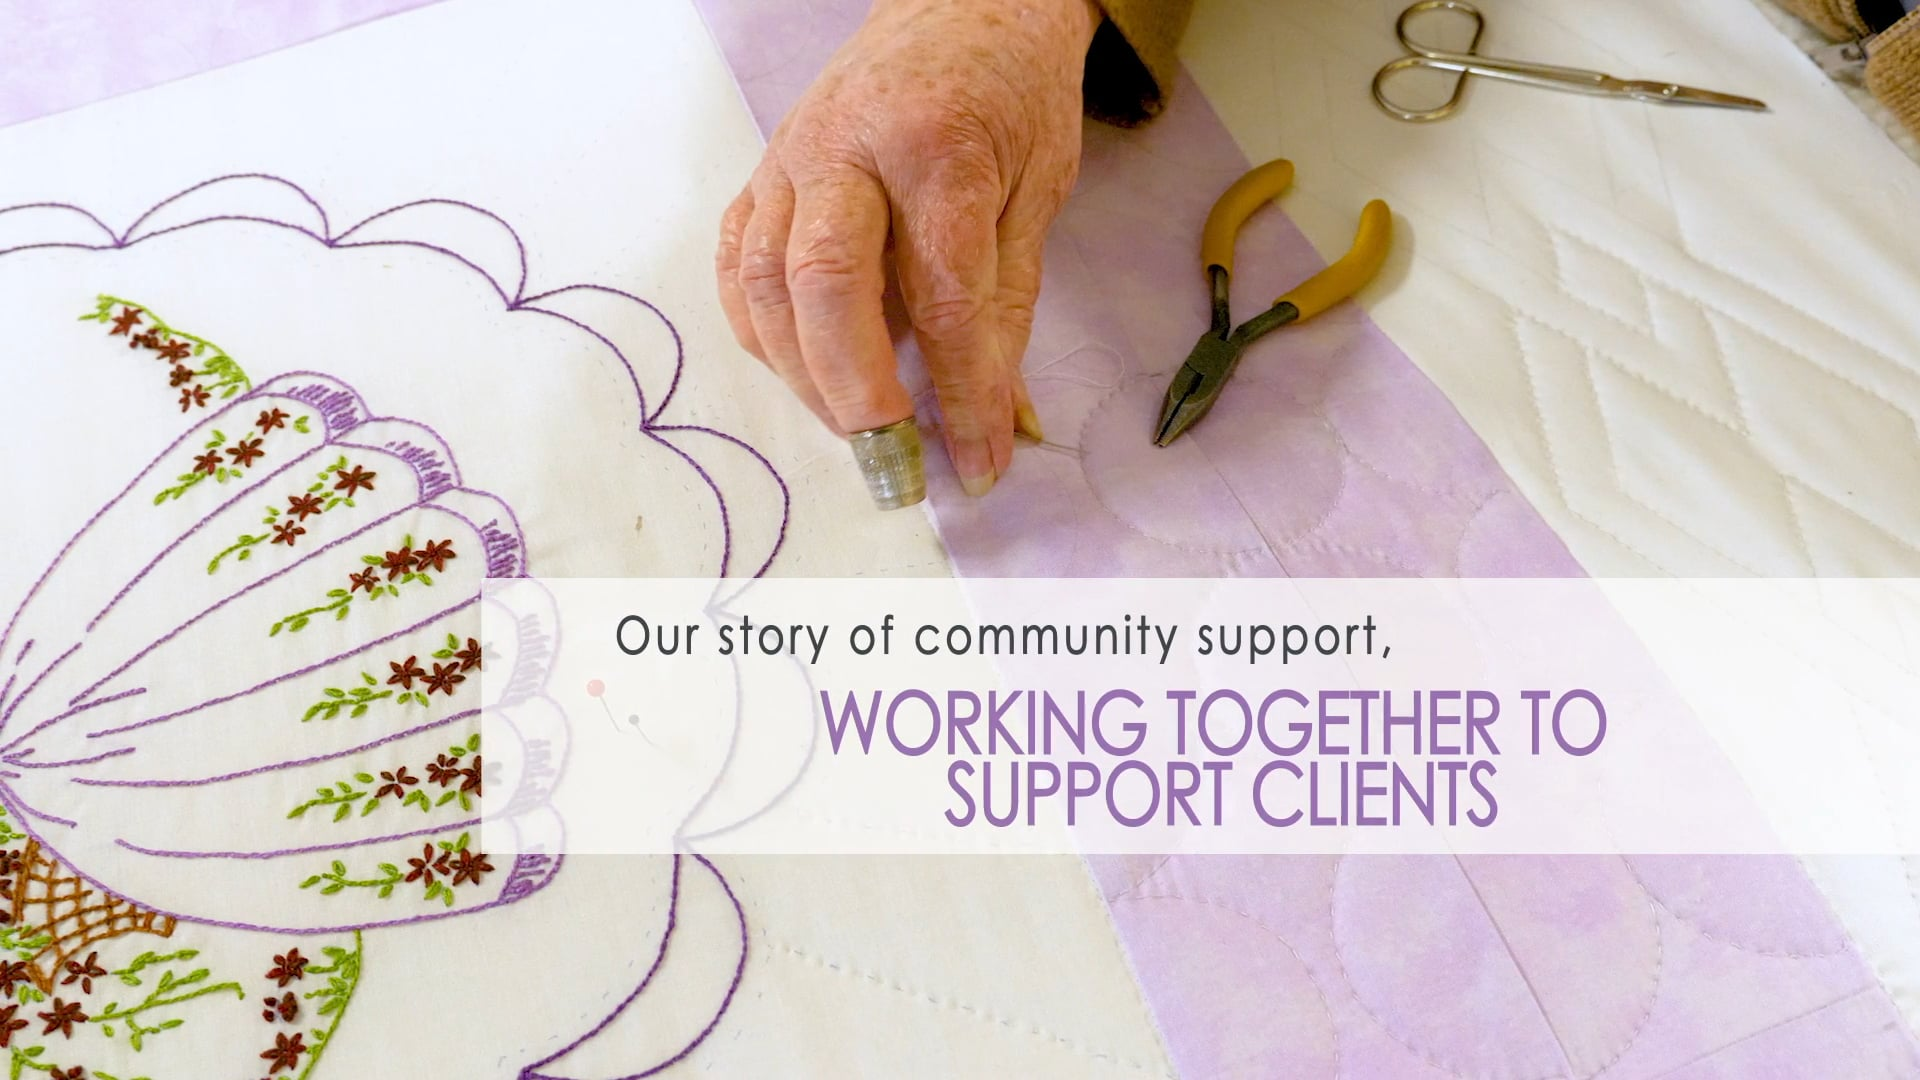 Working Together to Support our Clients - My Story of Community Support